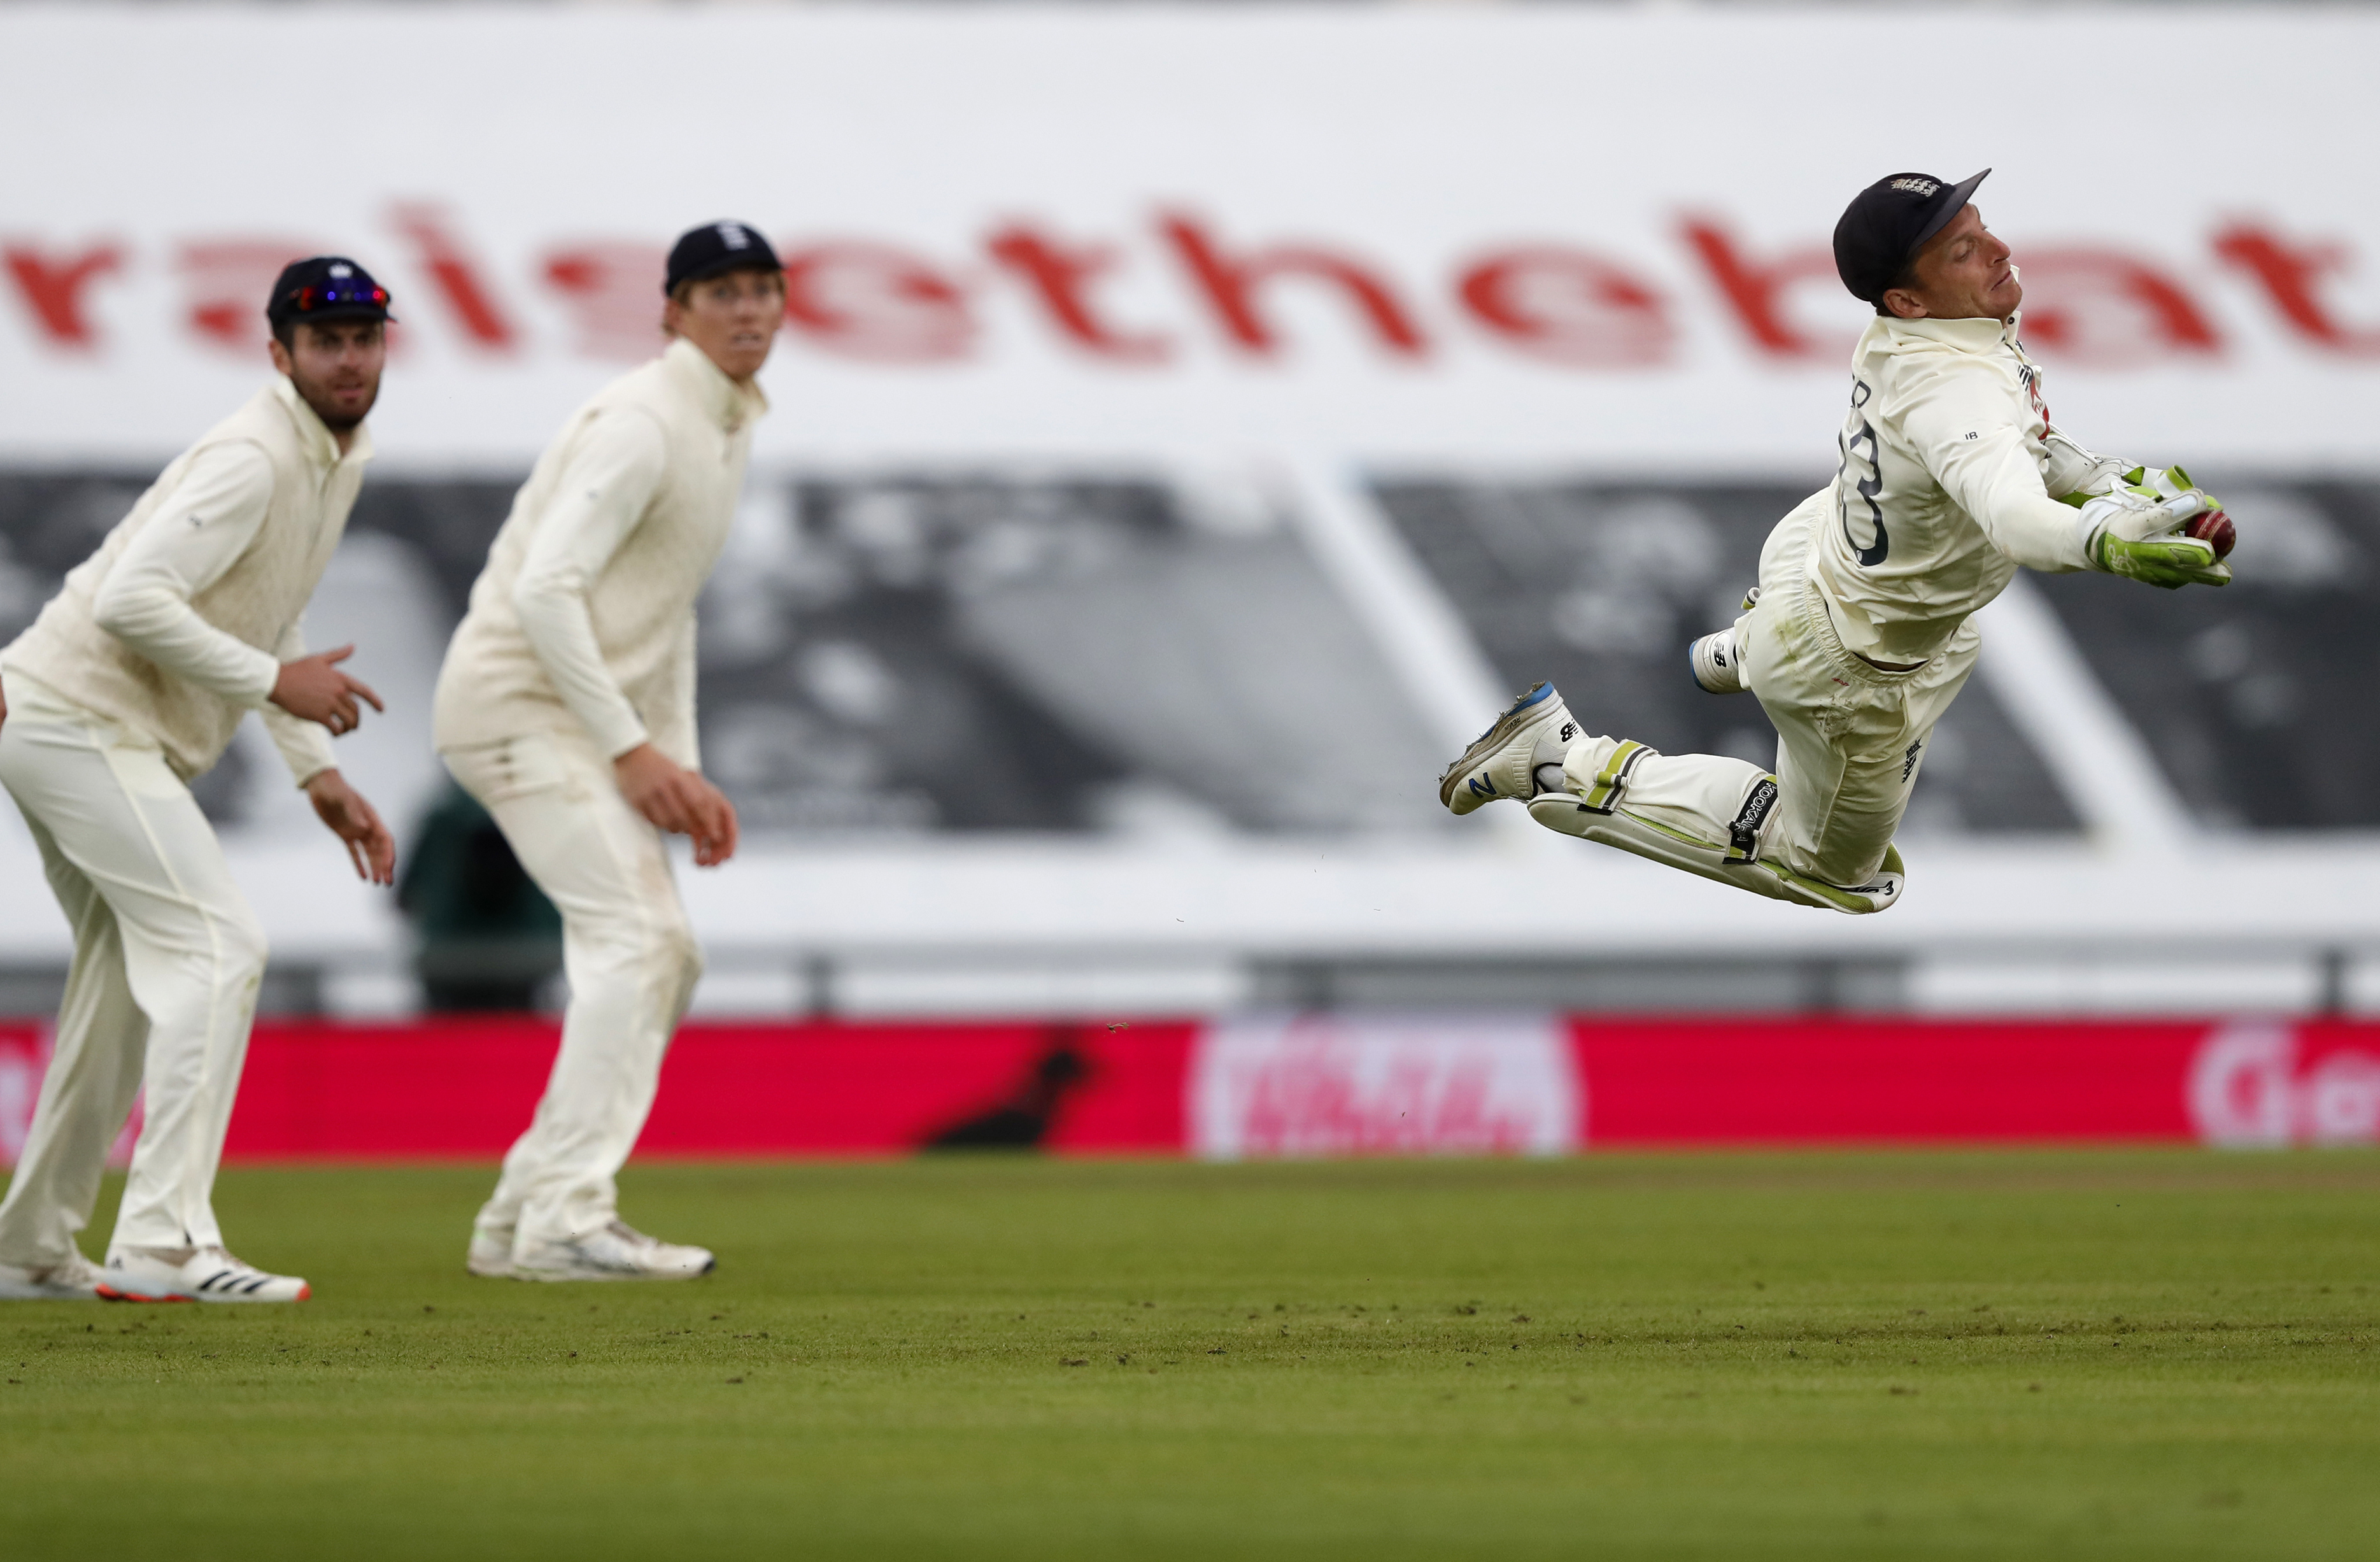 England's wicketkeeper Jos Buttler, right, dives to take the catch to dismiss Pakistan's Shaheen Afridi during the third day of the third cricket Test match between England and Pakistan, at the Ageas Bowl in Southampton, England, Sunday, Aug. 23, 2020. (AP Photo/Alastair Grant, Pool)